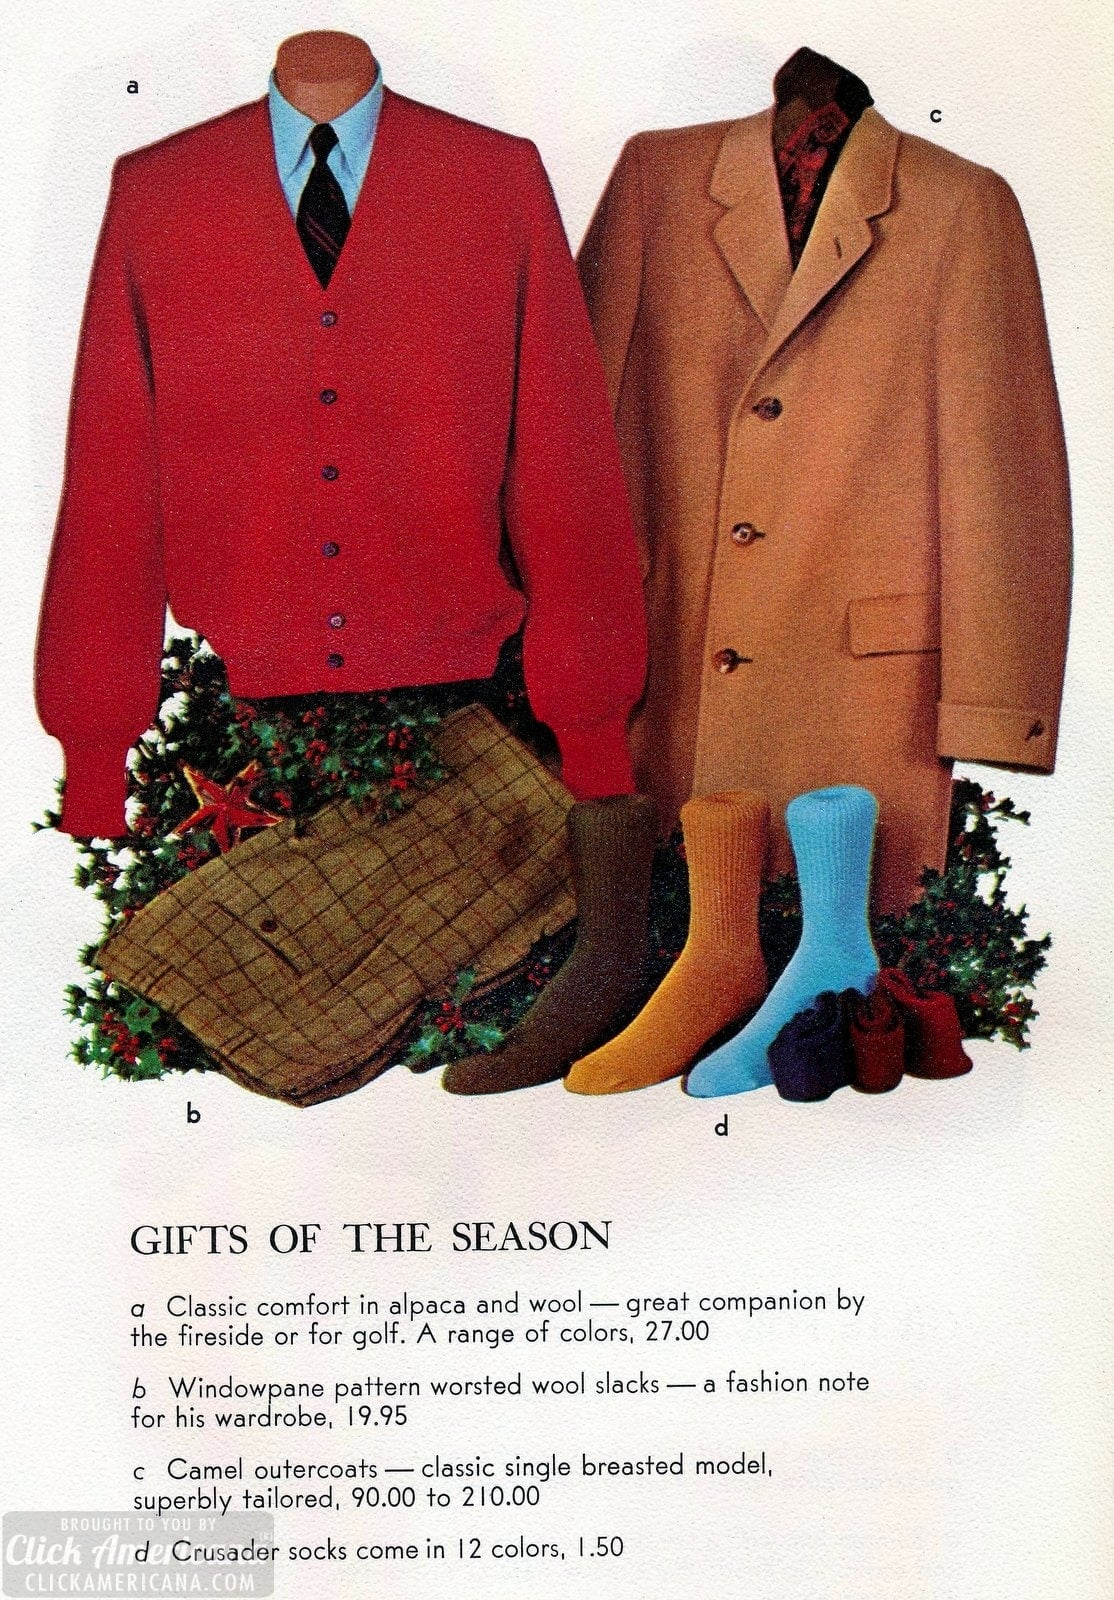 Vintage sweaters, slacks, outercoats and socks for men